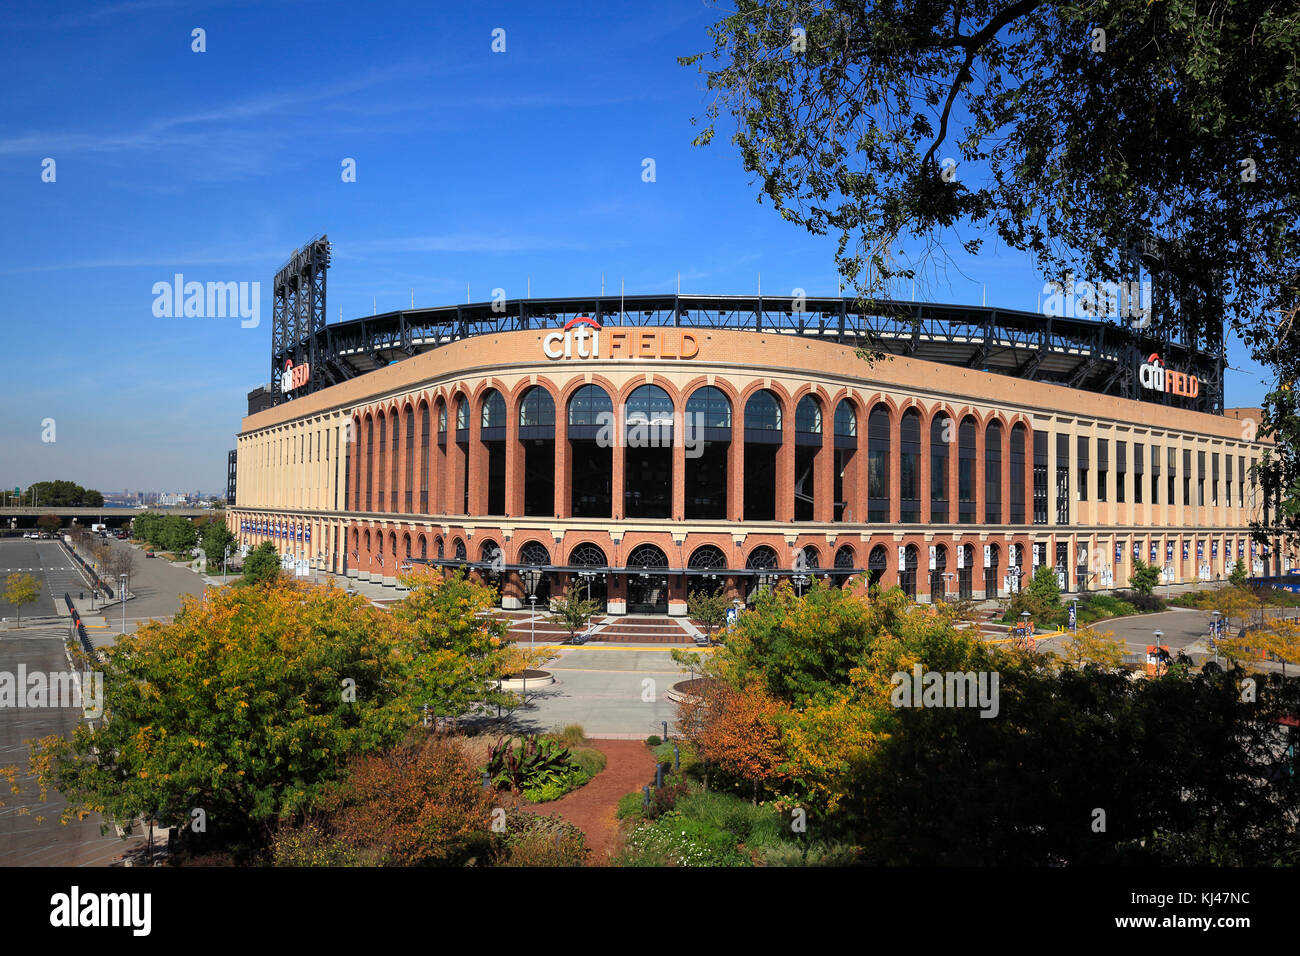 Exterior of CitiField baseball stadion in Queens, New York City - Stock Image